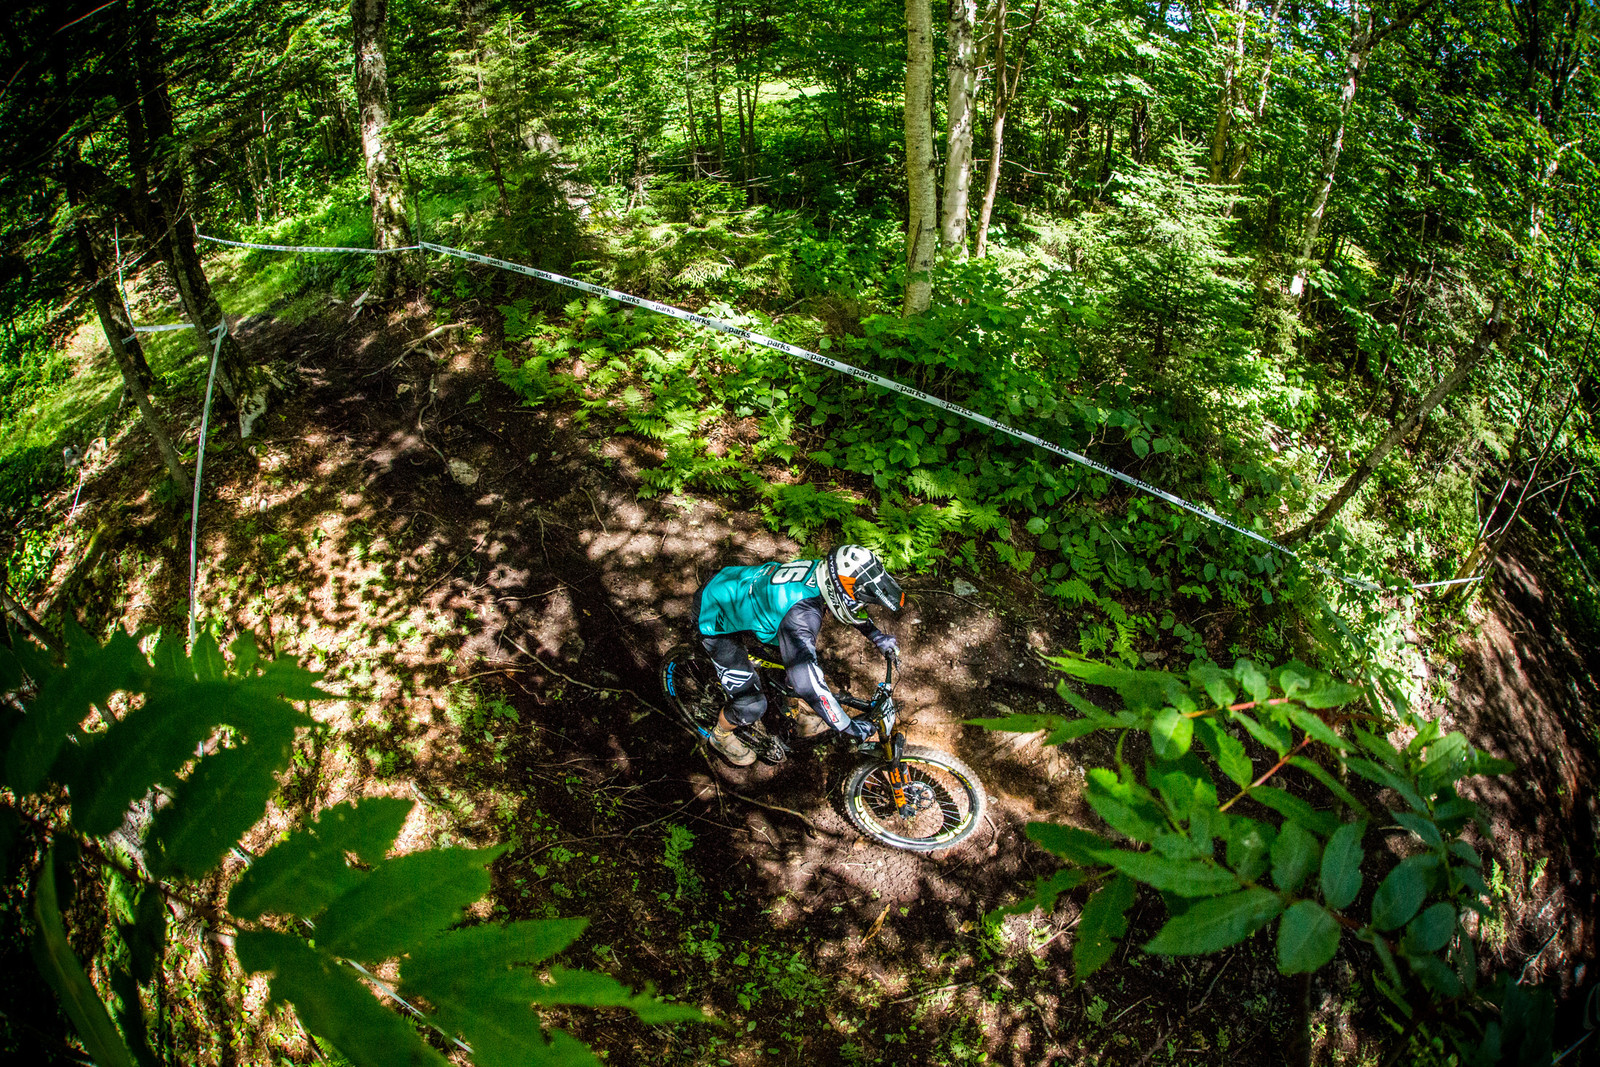 Rocking a DH/TR hybrid, Logan Binggeli seemed happy with his choice, never changing bikes.